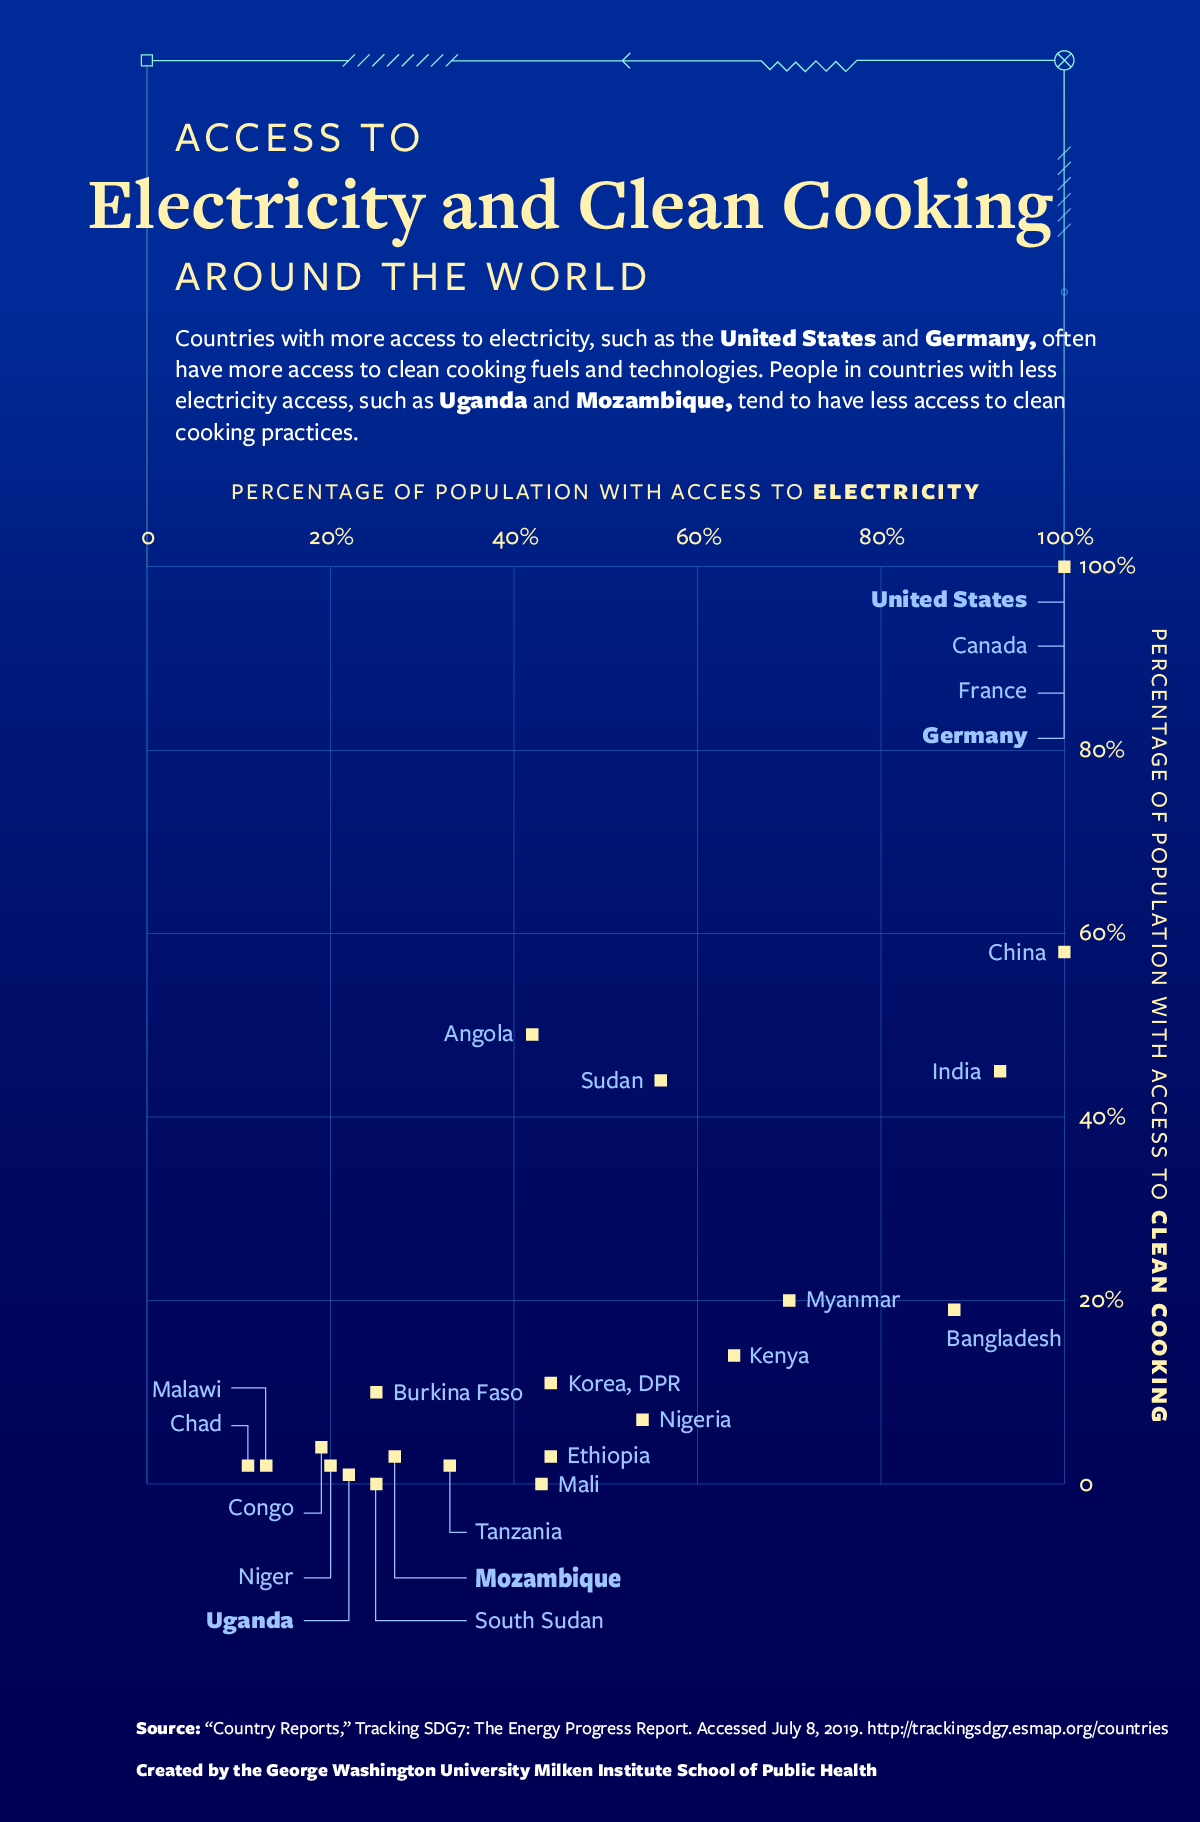 A scatterplot comparing electricity access and clean cooking access in the United States, Canada, France, Germany and 20 high-impact countries.